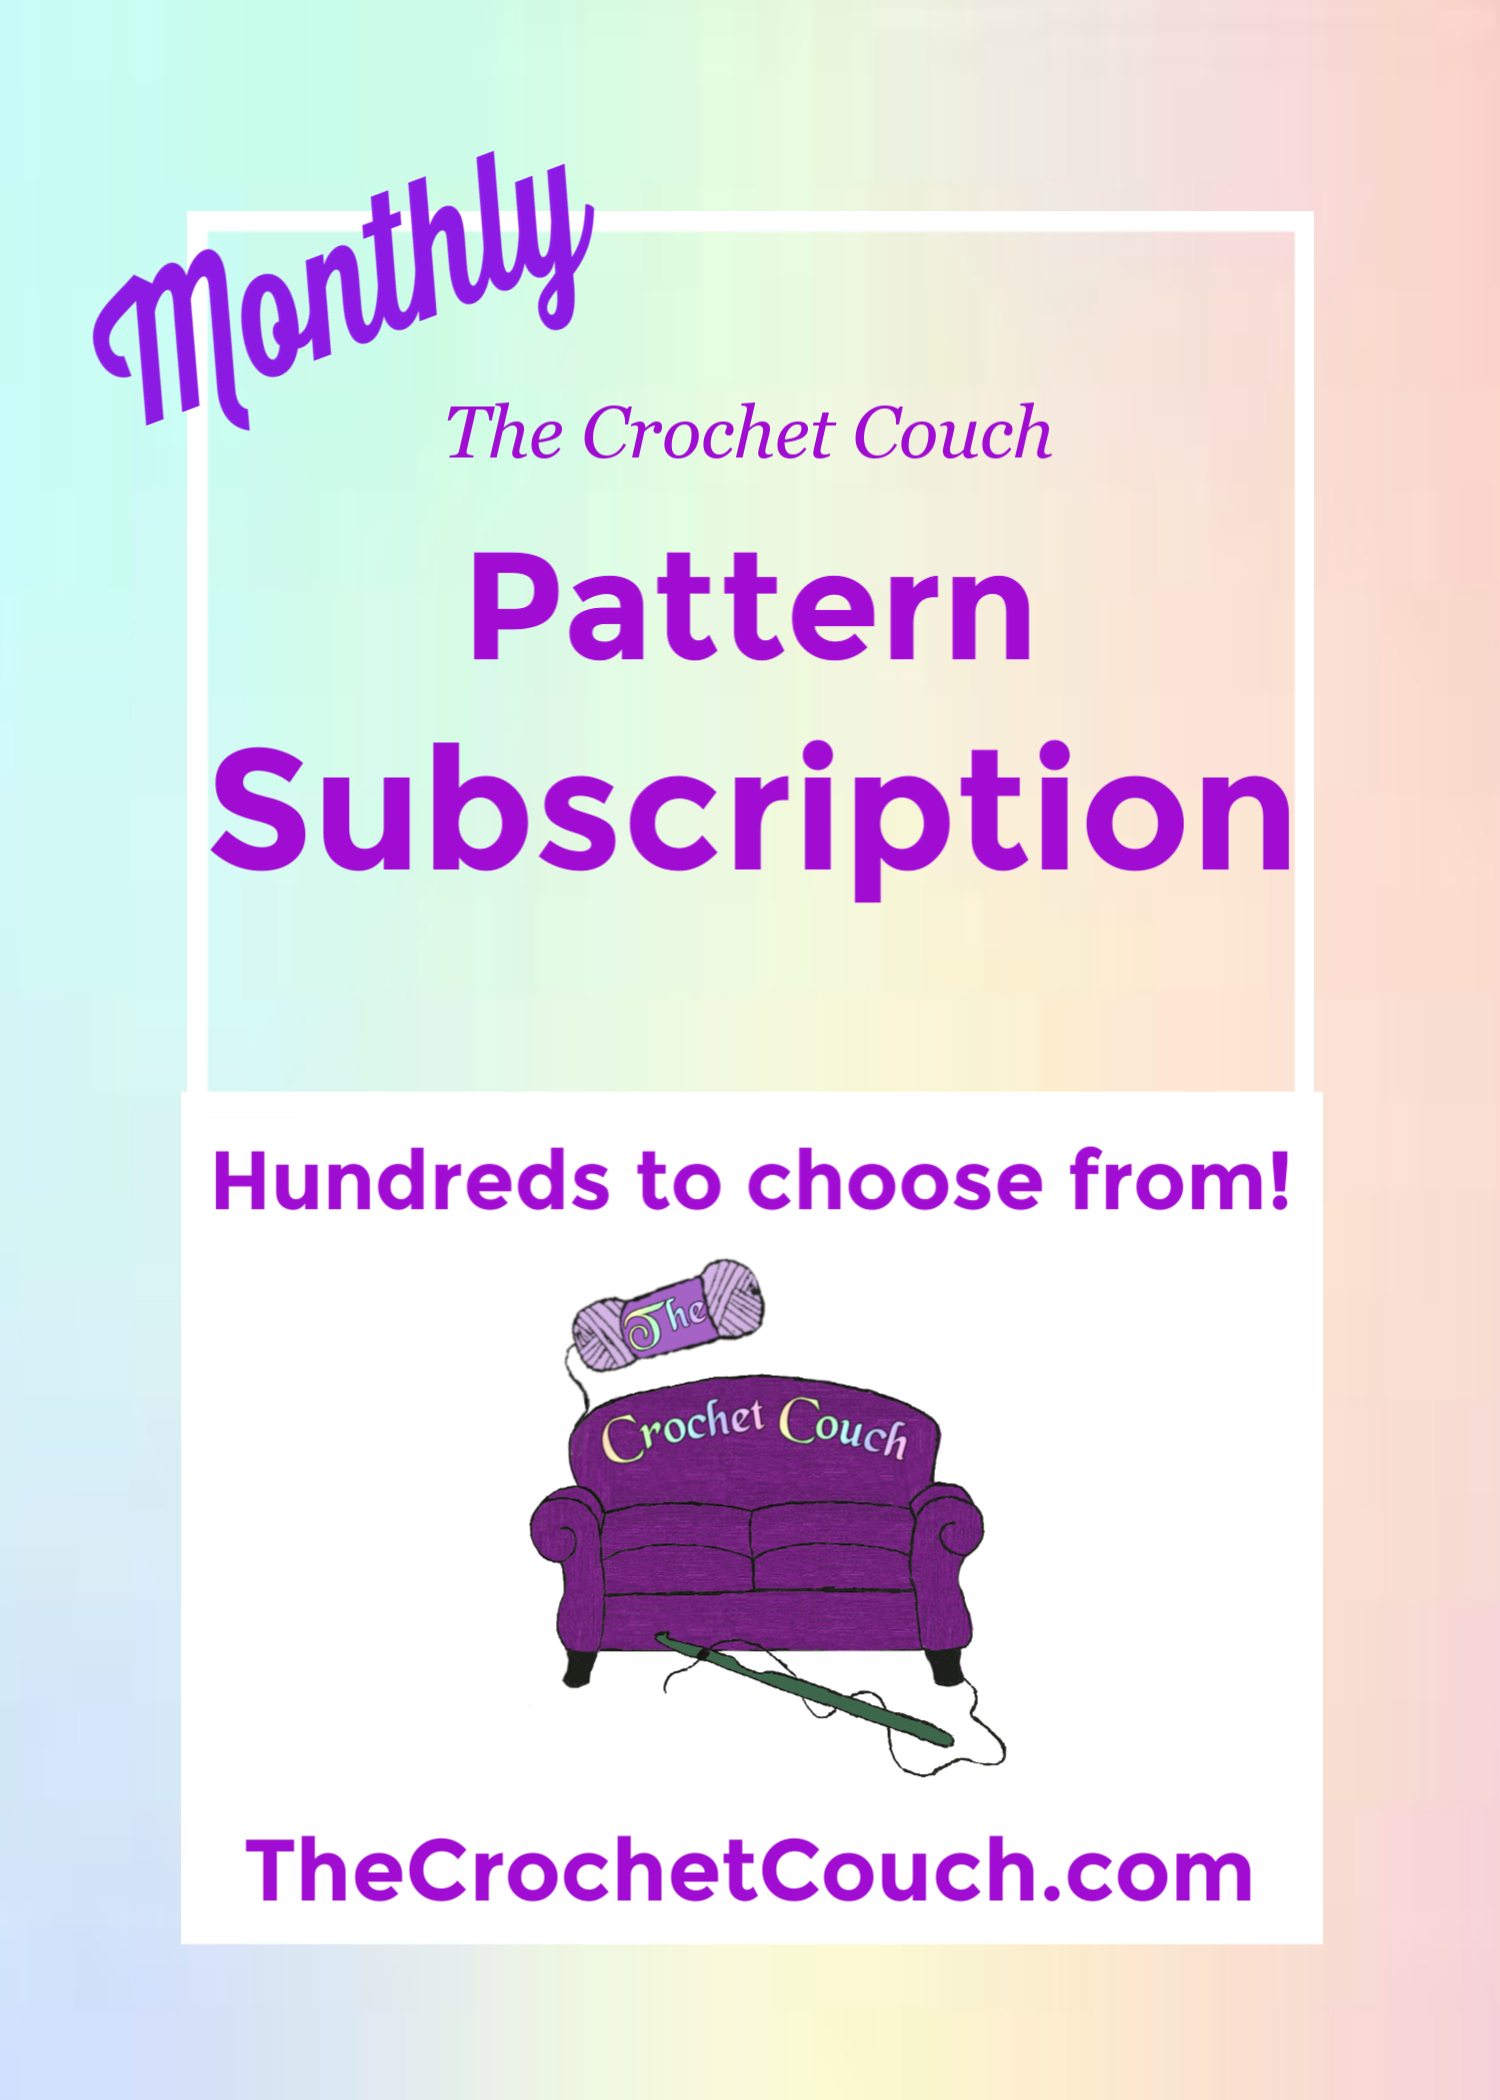 Monthly Subscription - Join The Crochet Couch Monthly Pattern Subscription!Each month you will receive two (2) patterns of your choice from any listed at thecrochetcouch.com.In addition, you will also have access to over 100 free patterns (free patterns added here on a regular basis) that you can download as you wish - there are no limits to the amount of free patterns you can download.The monthly subscription will charge $5 each month automatically with the payment method you choose - you can cancel at any time. **Yearly payment option available as well